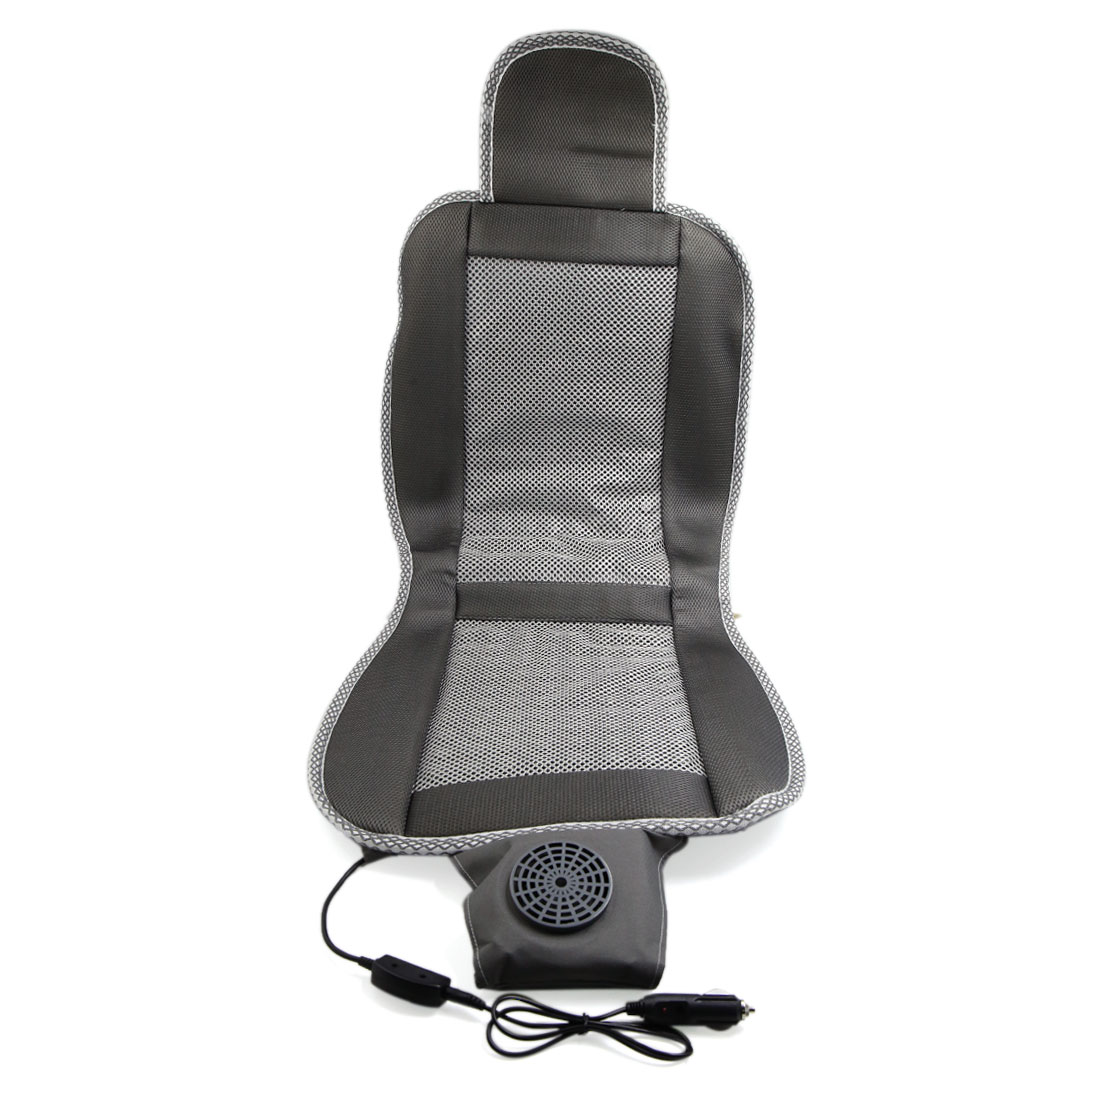 Adjustable Temperature Cooling Car Seat Cushion Cover Summer Cooler Pad Gray